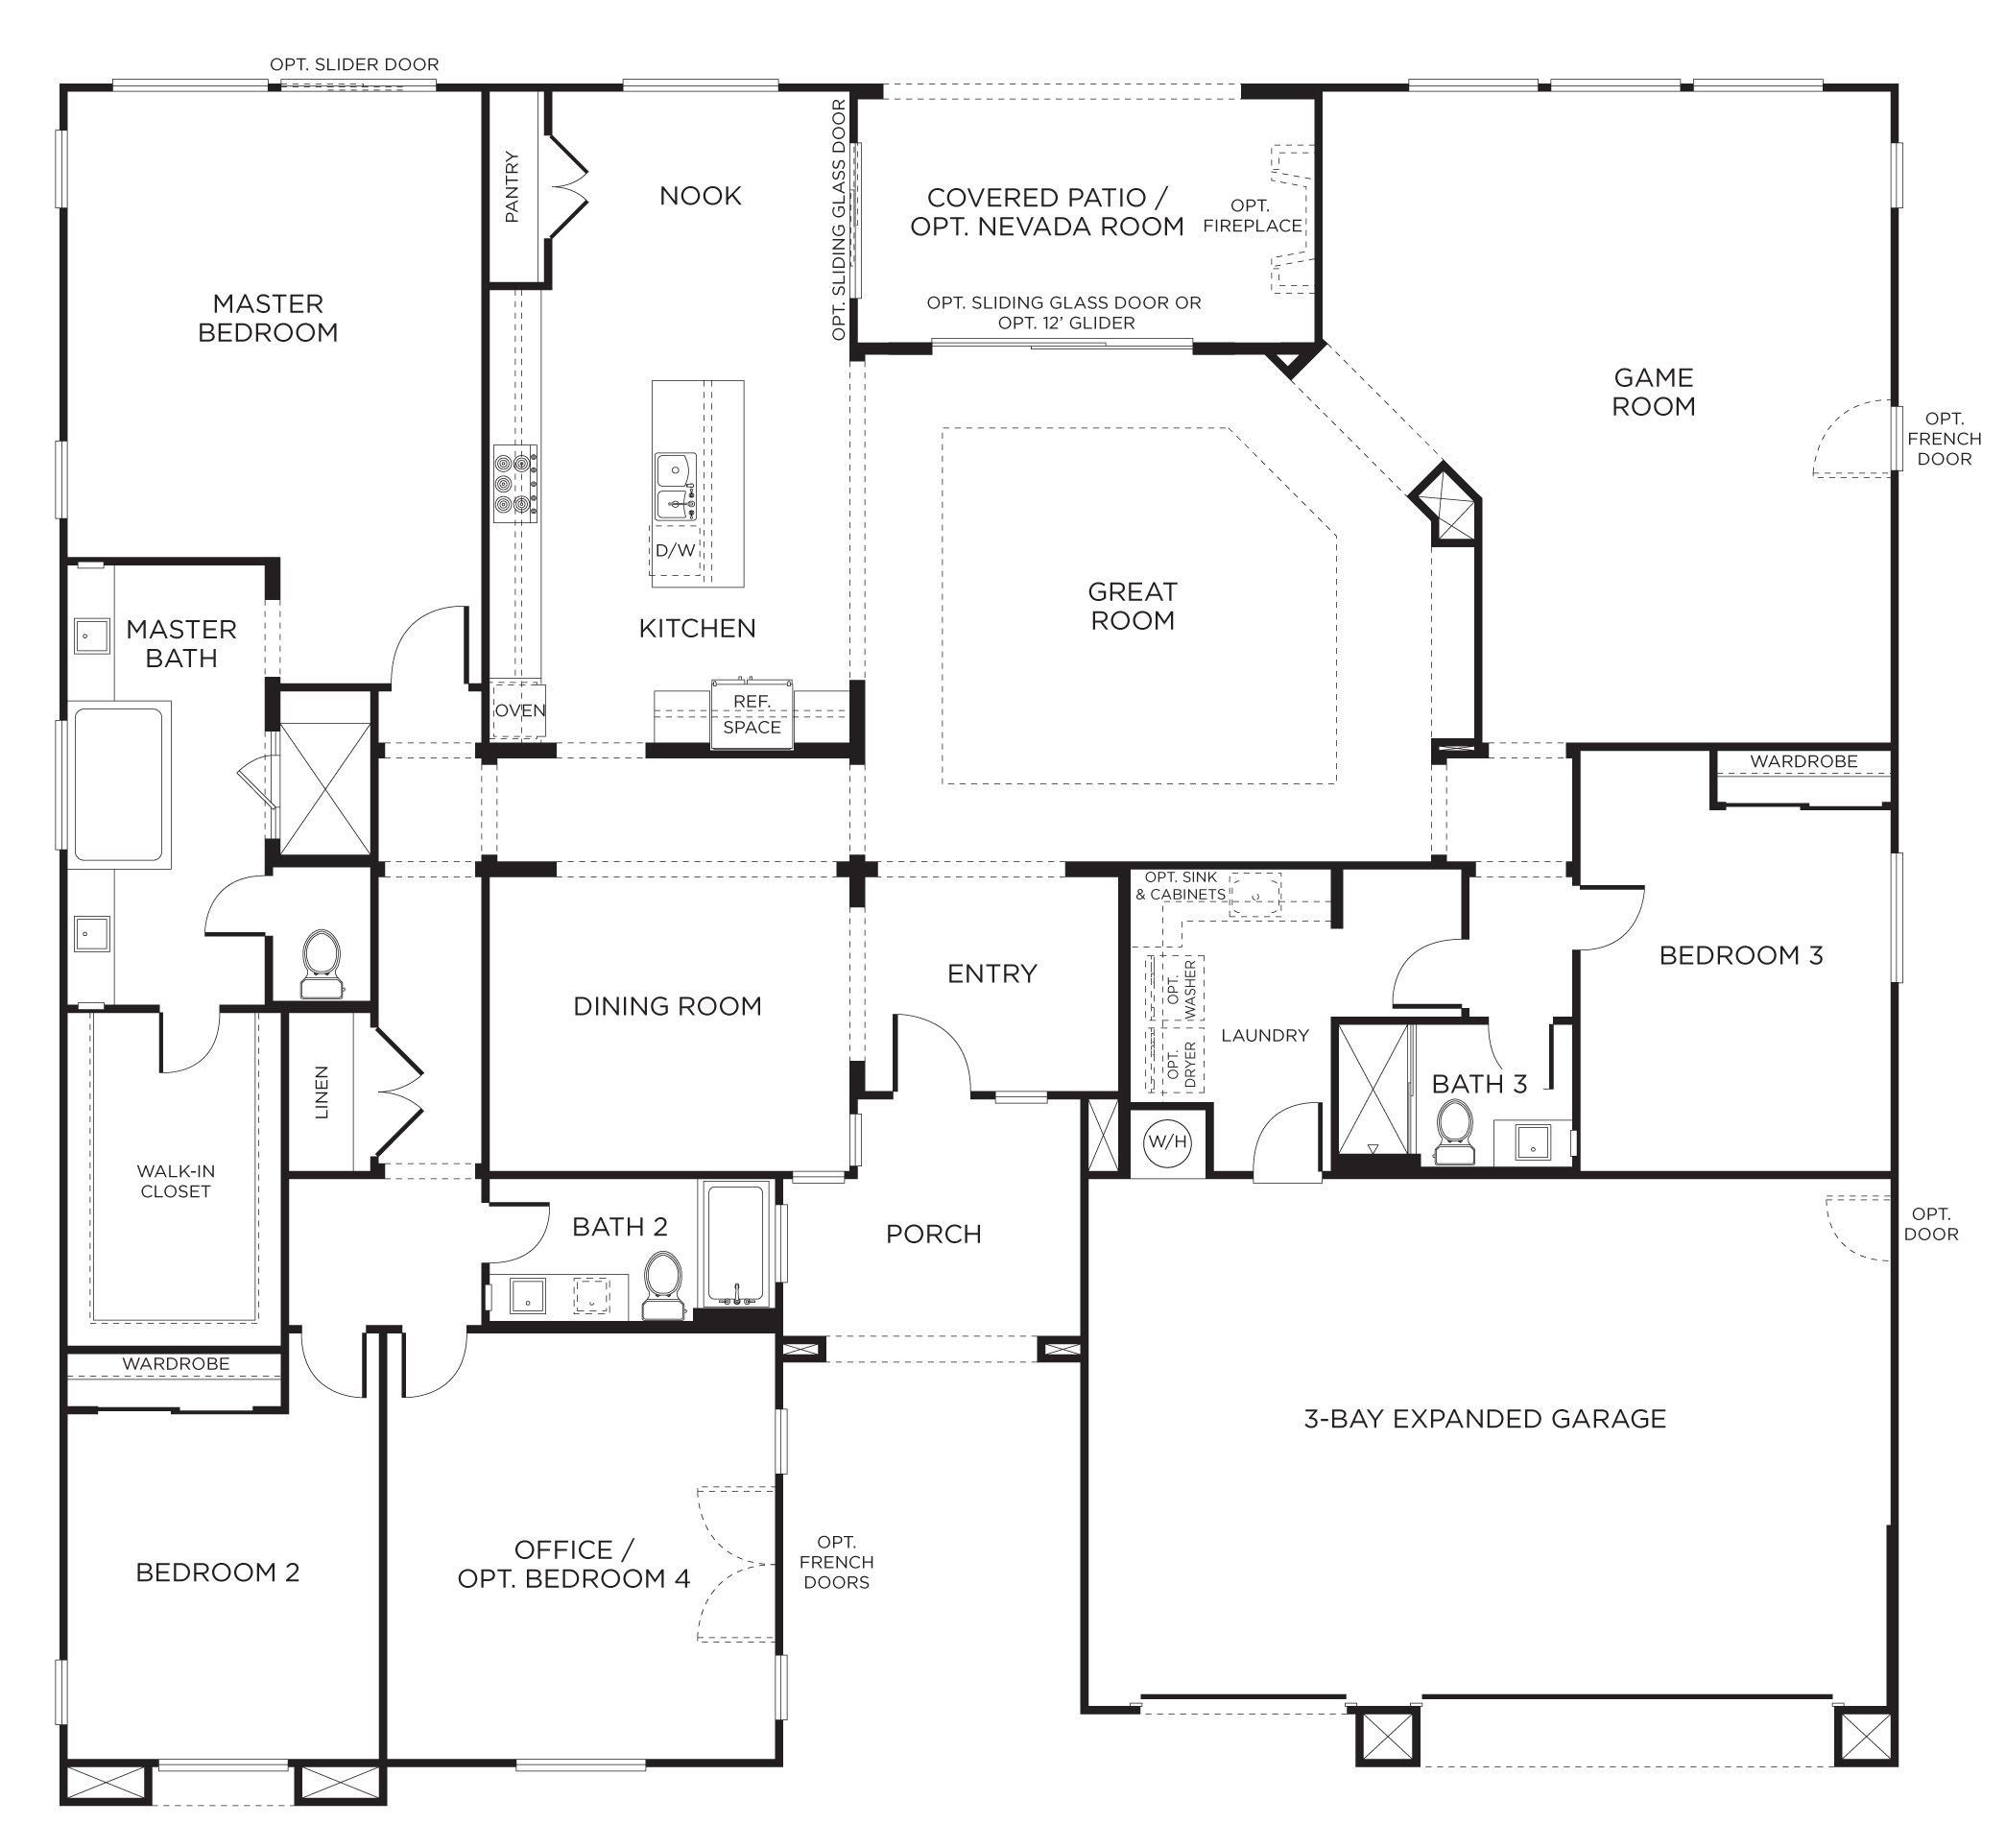 Floorplan 2 3 4 bedrooms 3 bathrooms 3400 square feet - Single story 4 bedroom modern house plans ...